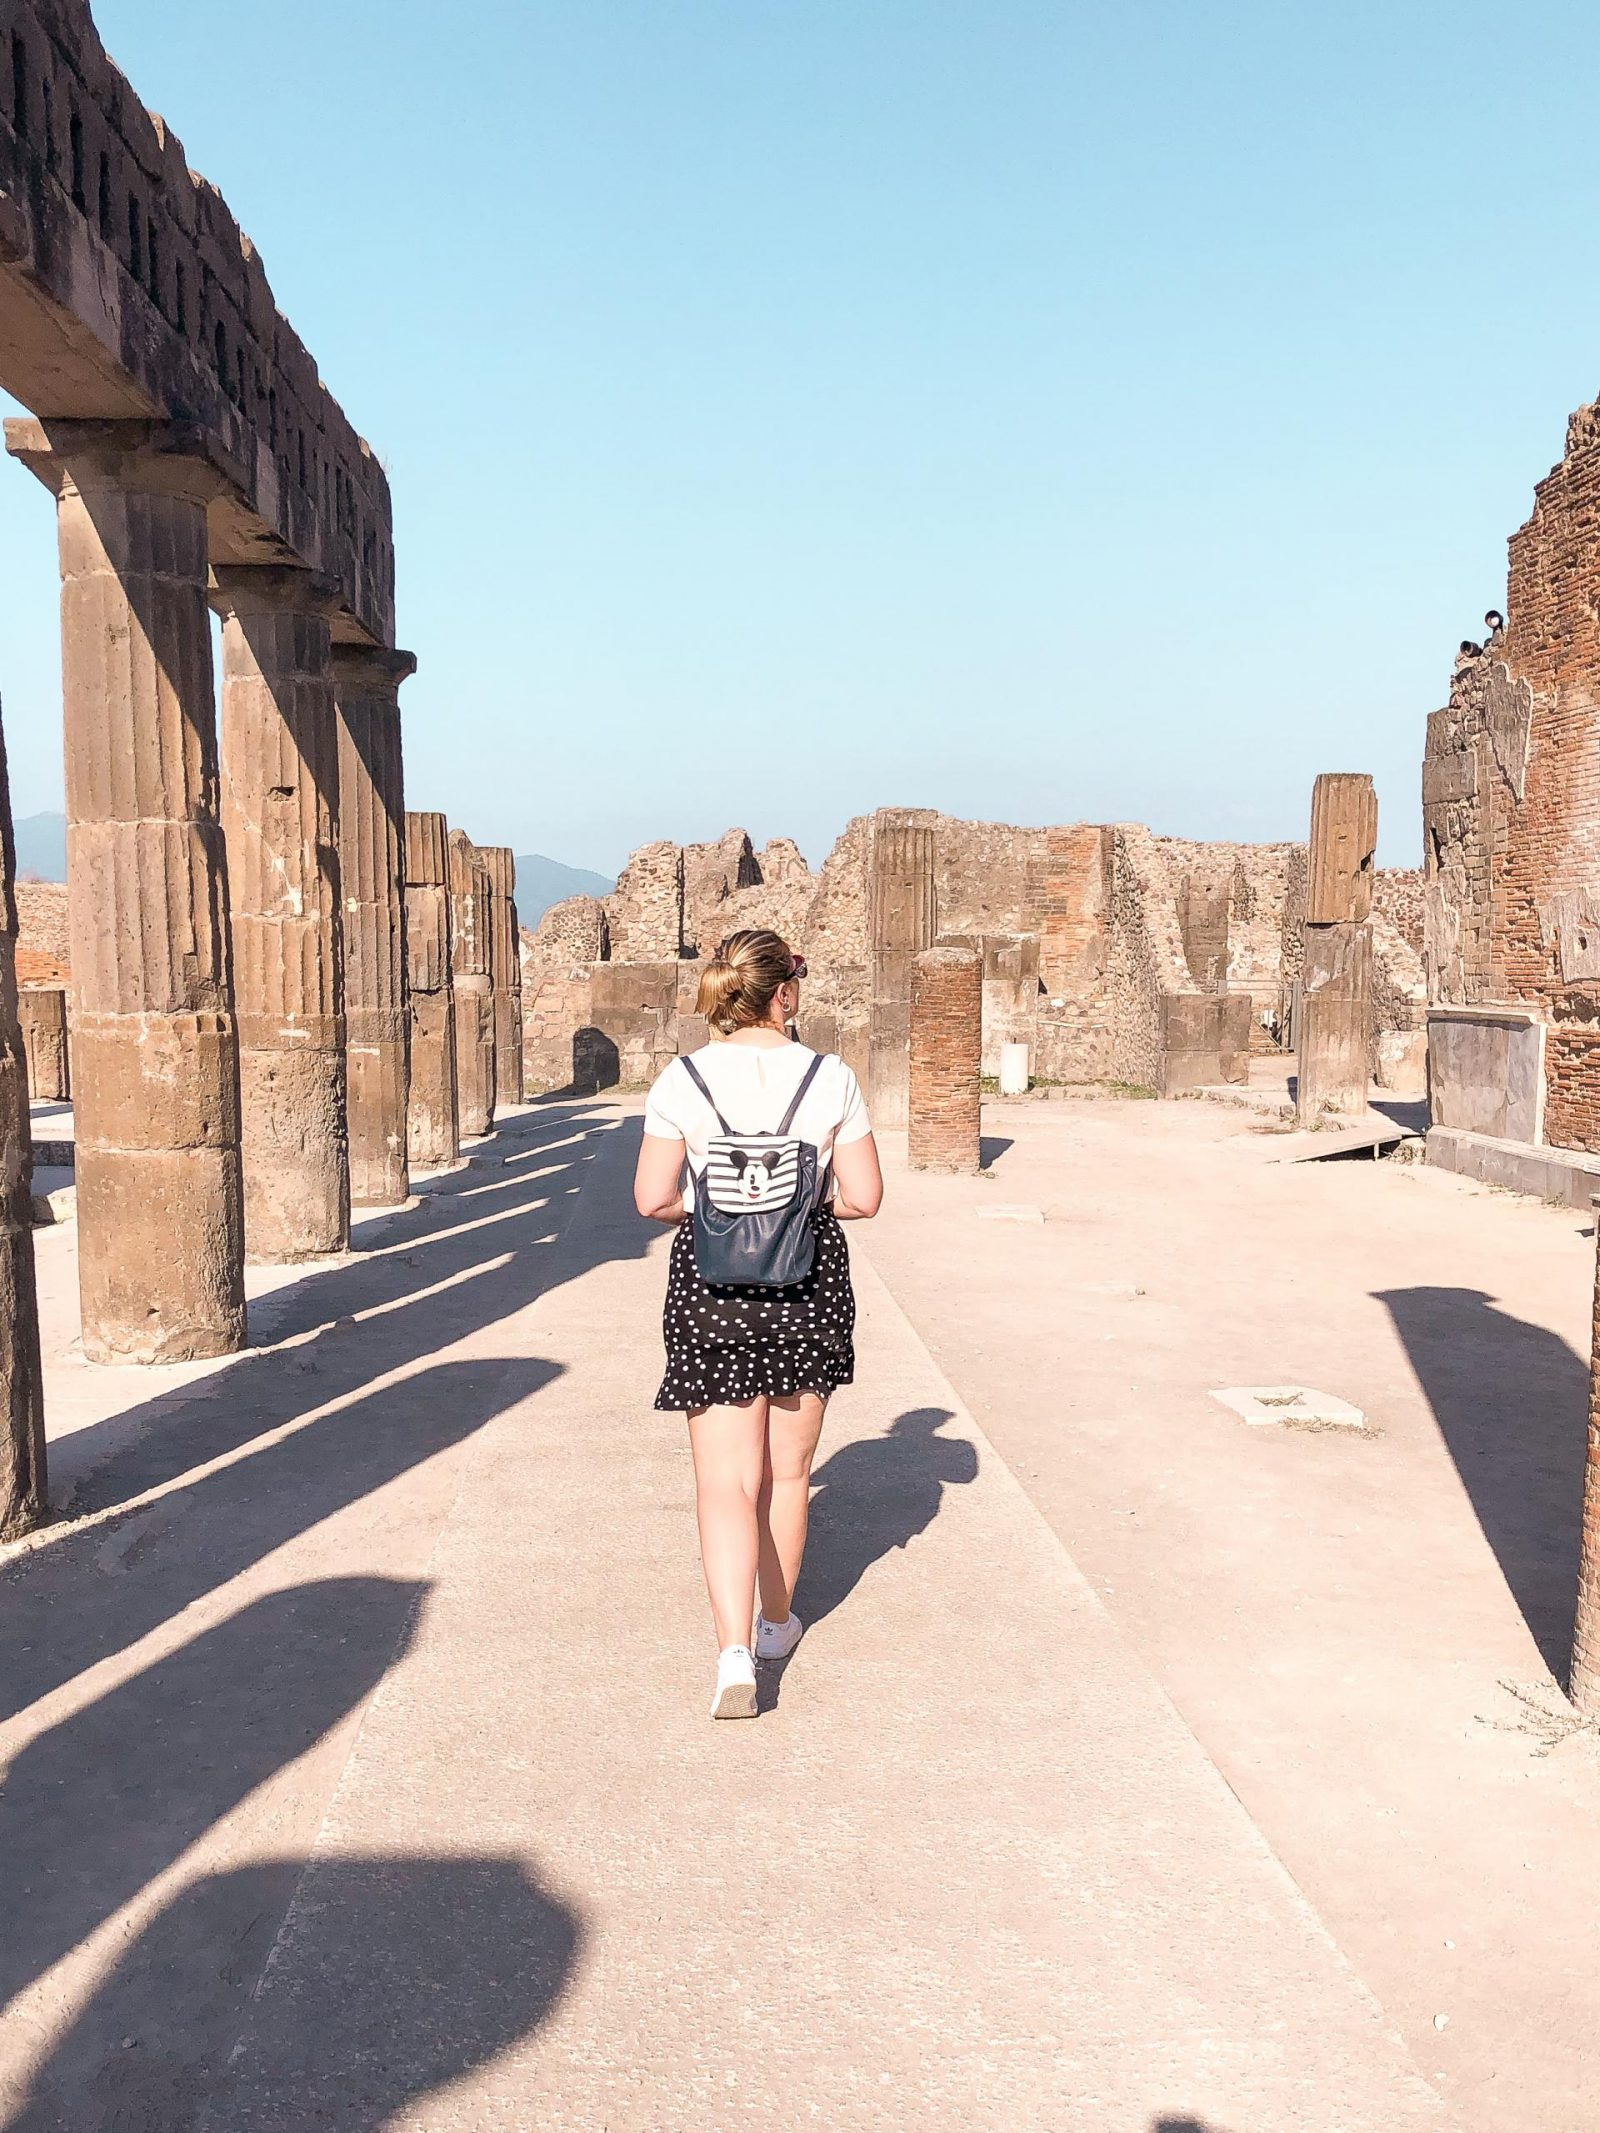 Walking the ruins of Pompeii, a day trip from Sorrento.